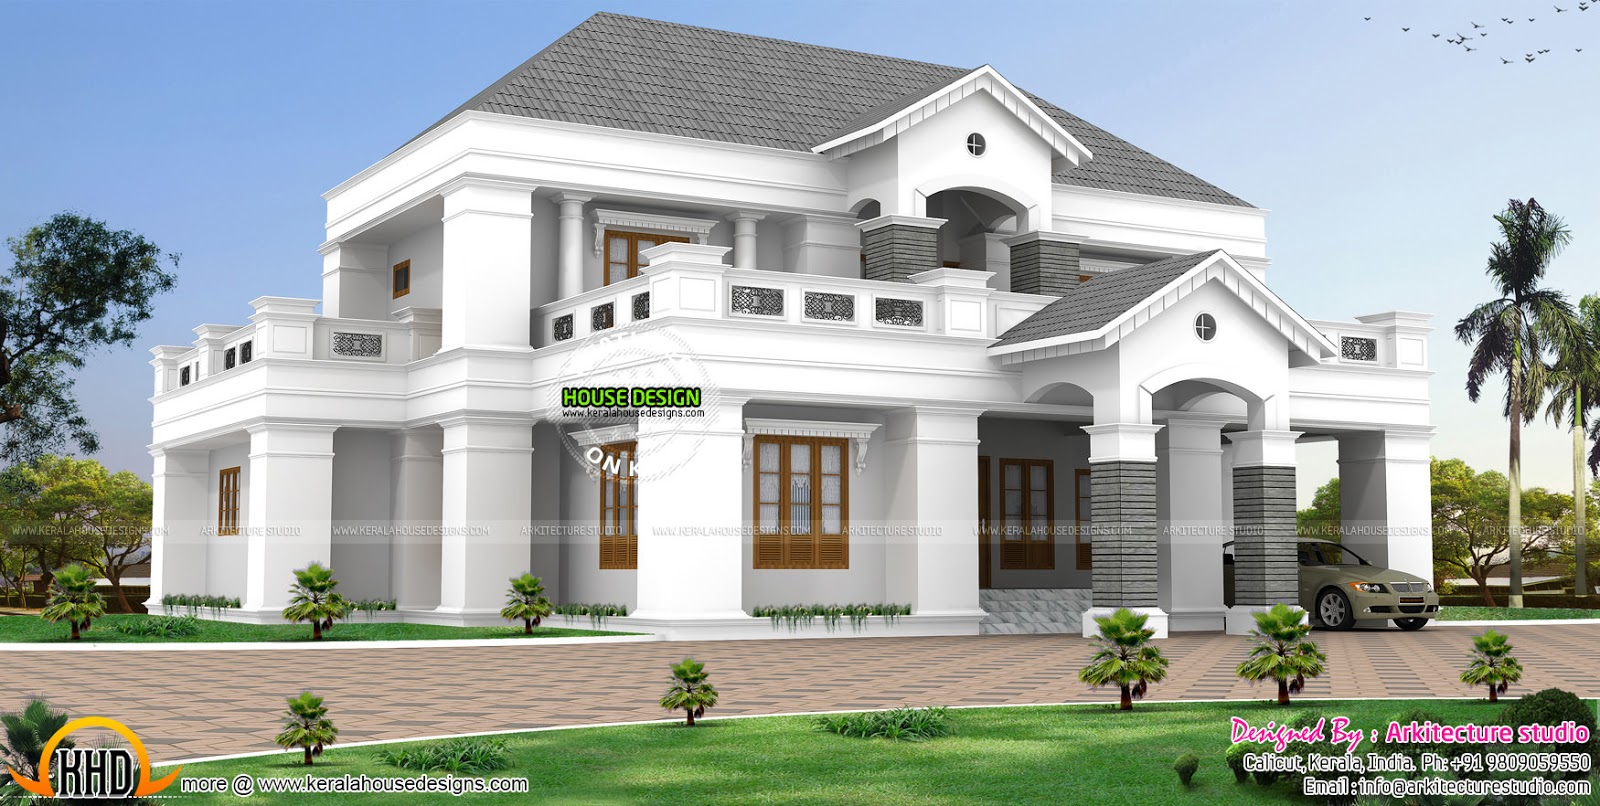 Luxurious pillar type home design kerala home design and for House plans architecture